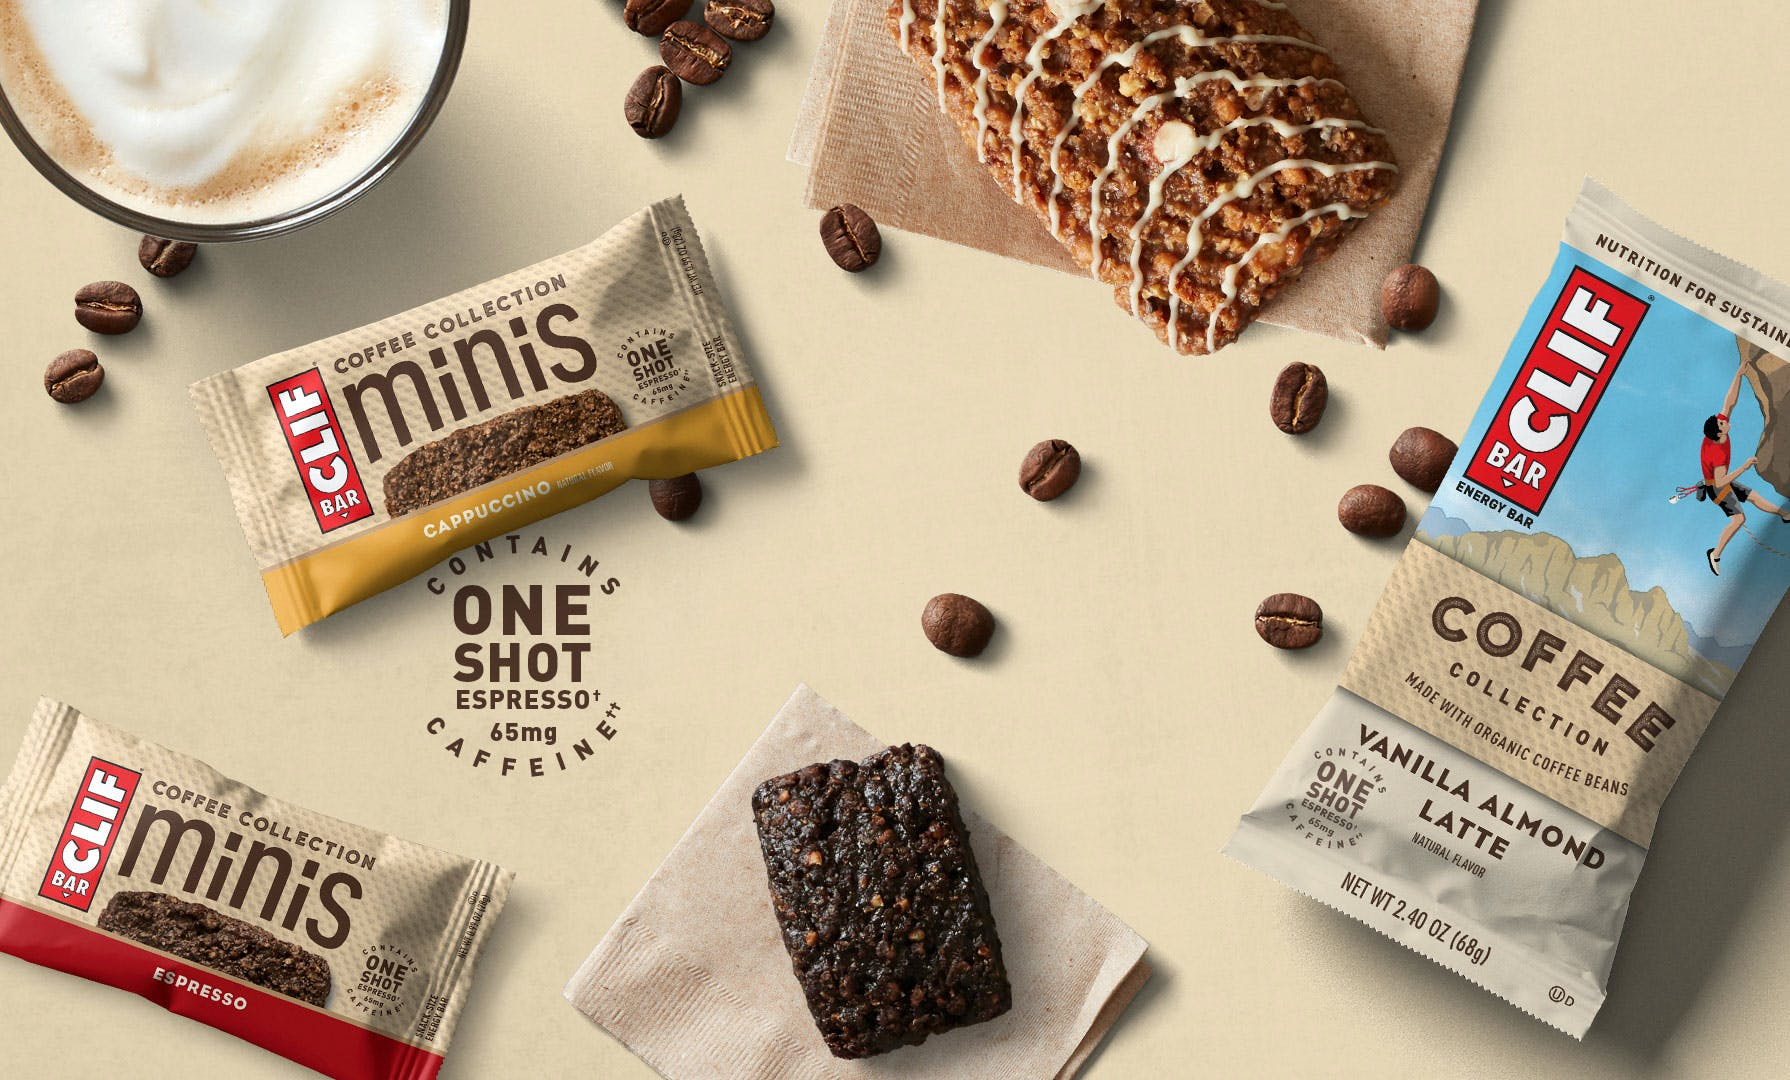 CLIF Coffee Collection with coffee beans